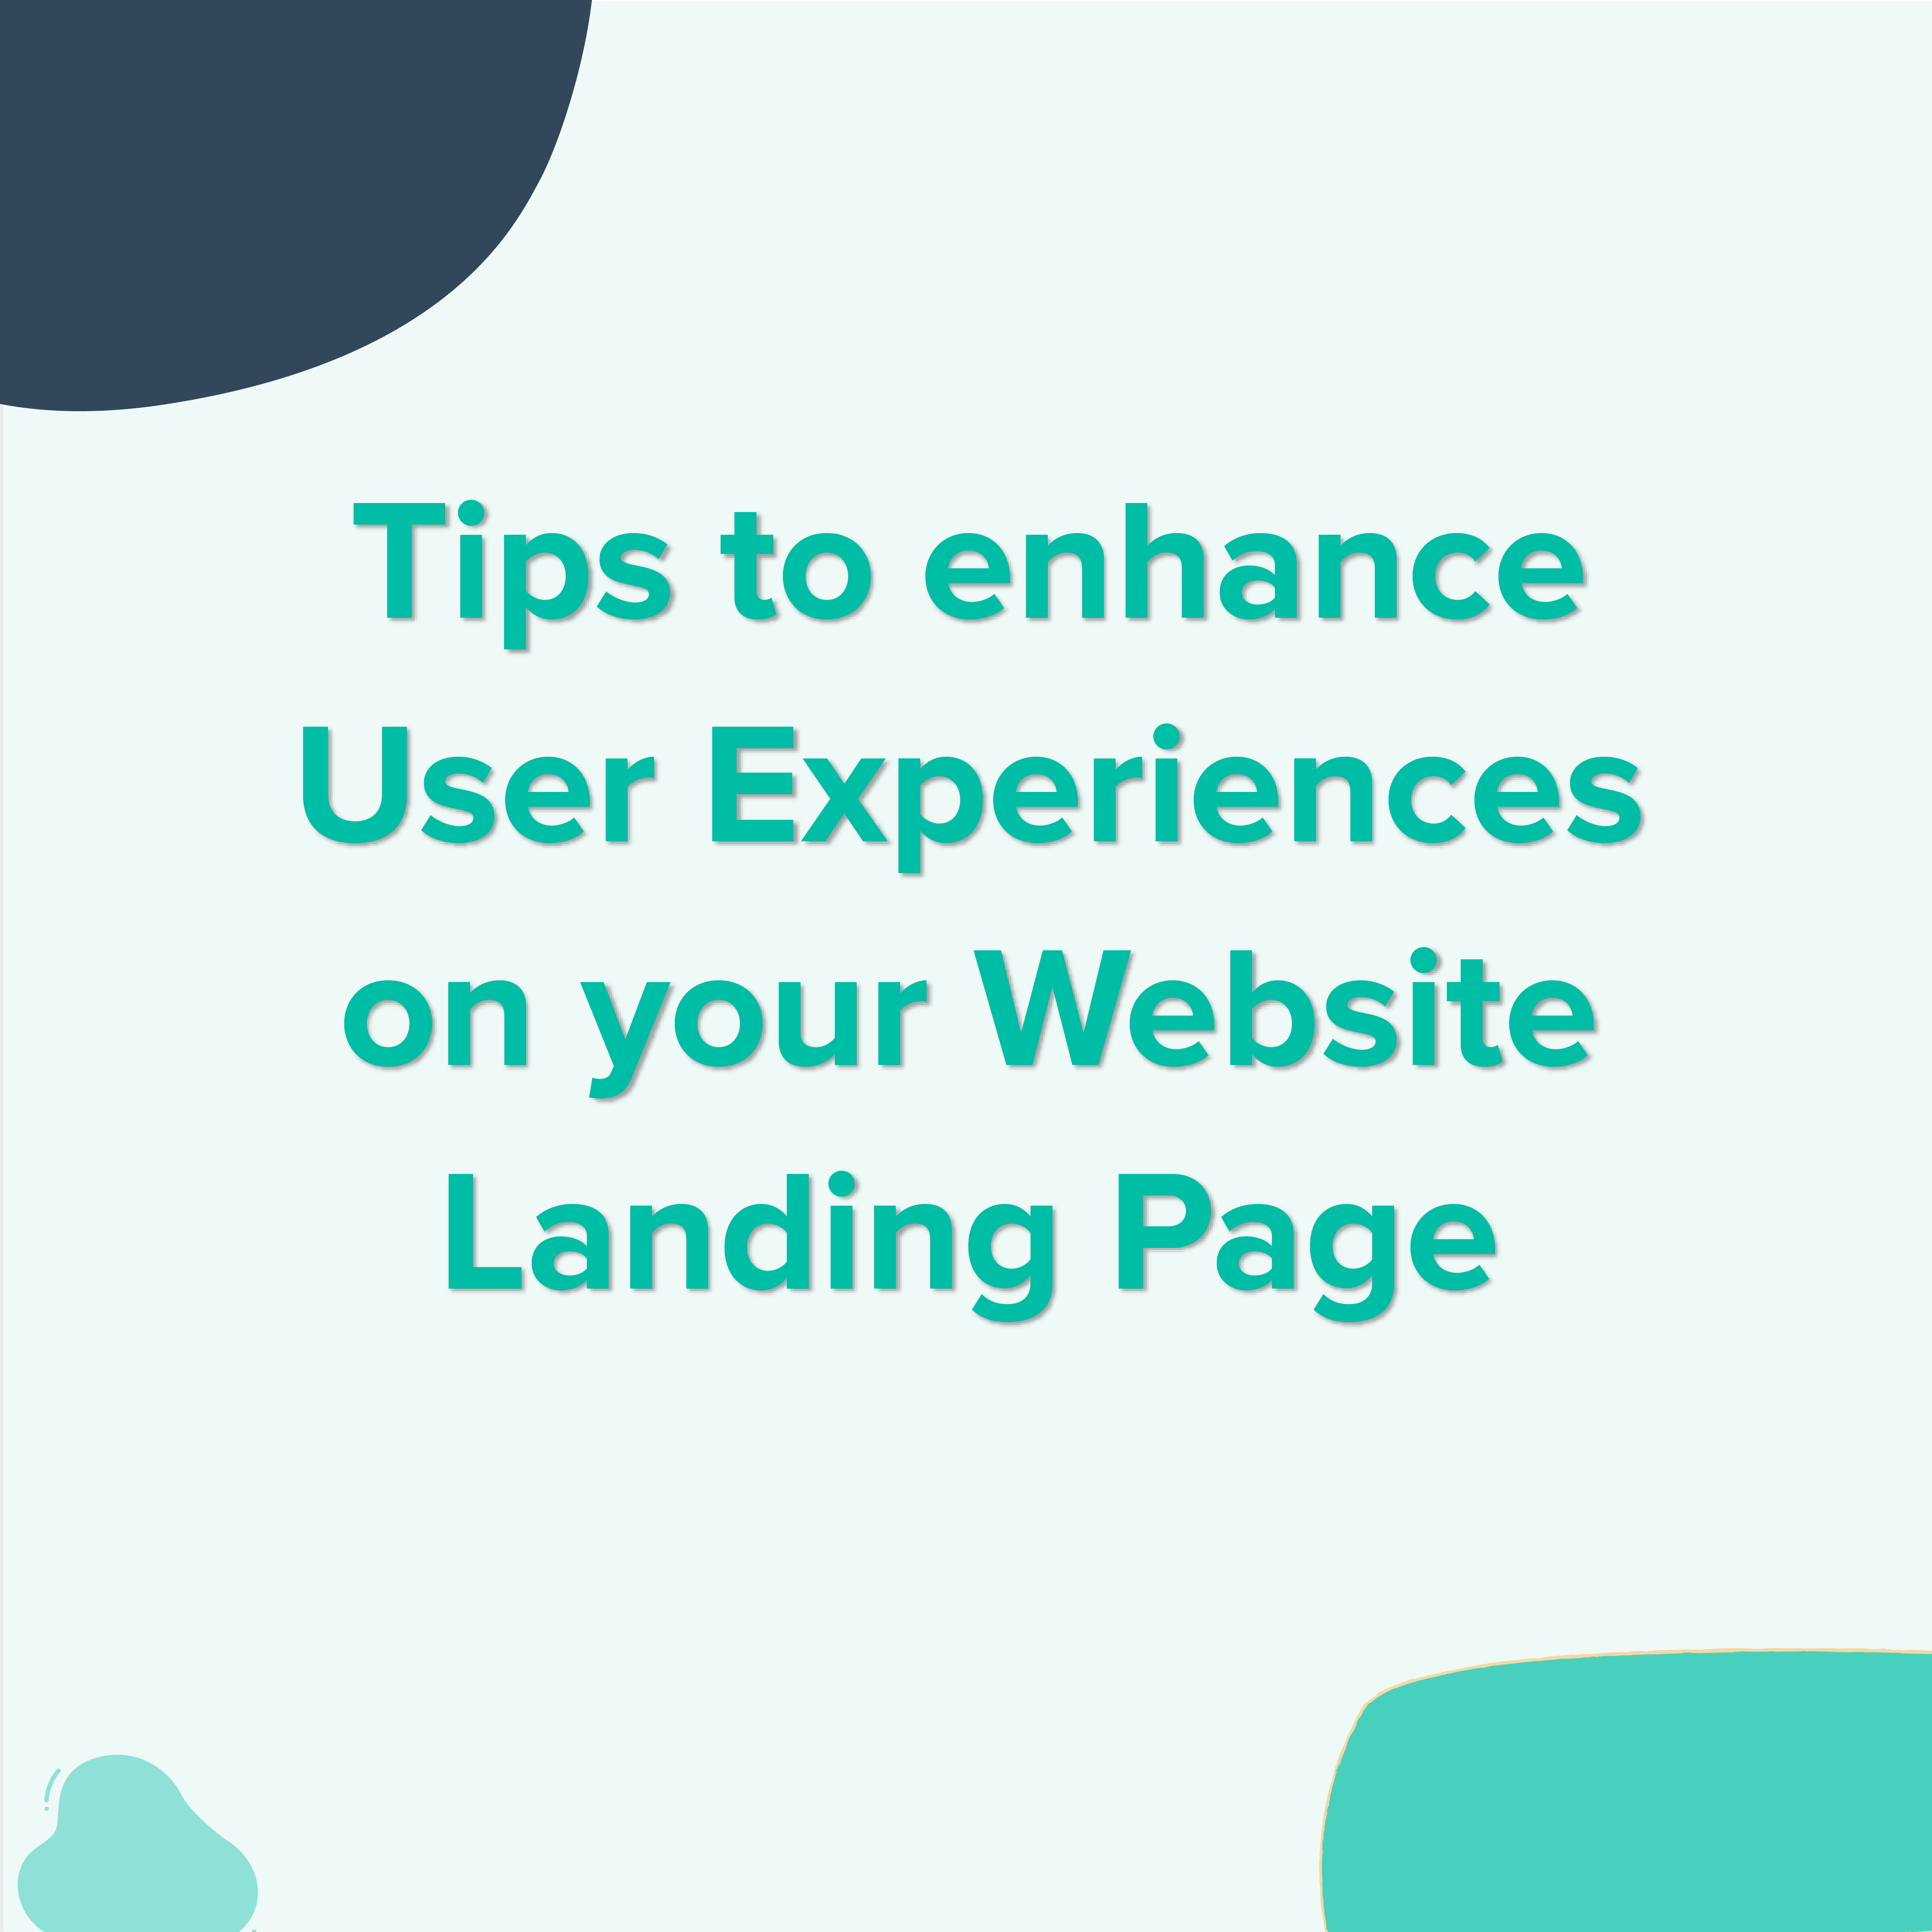 tips-to-enhance-user-experiences-on-your-website-landing-page